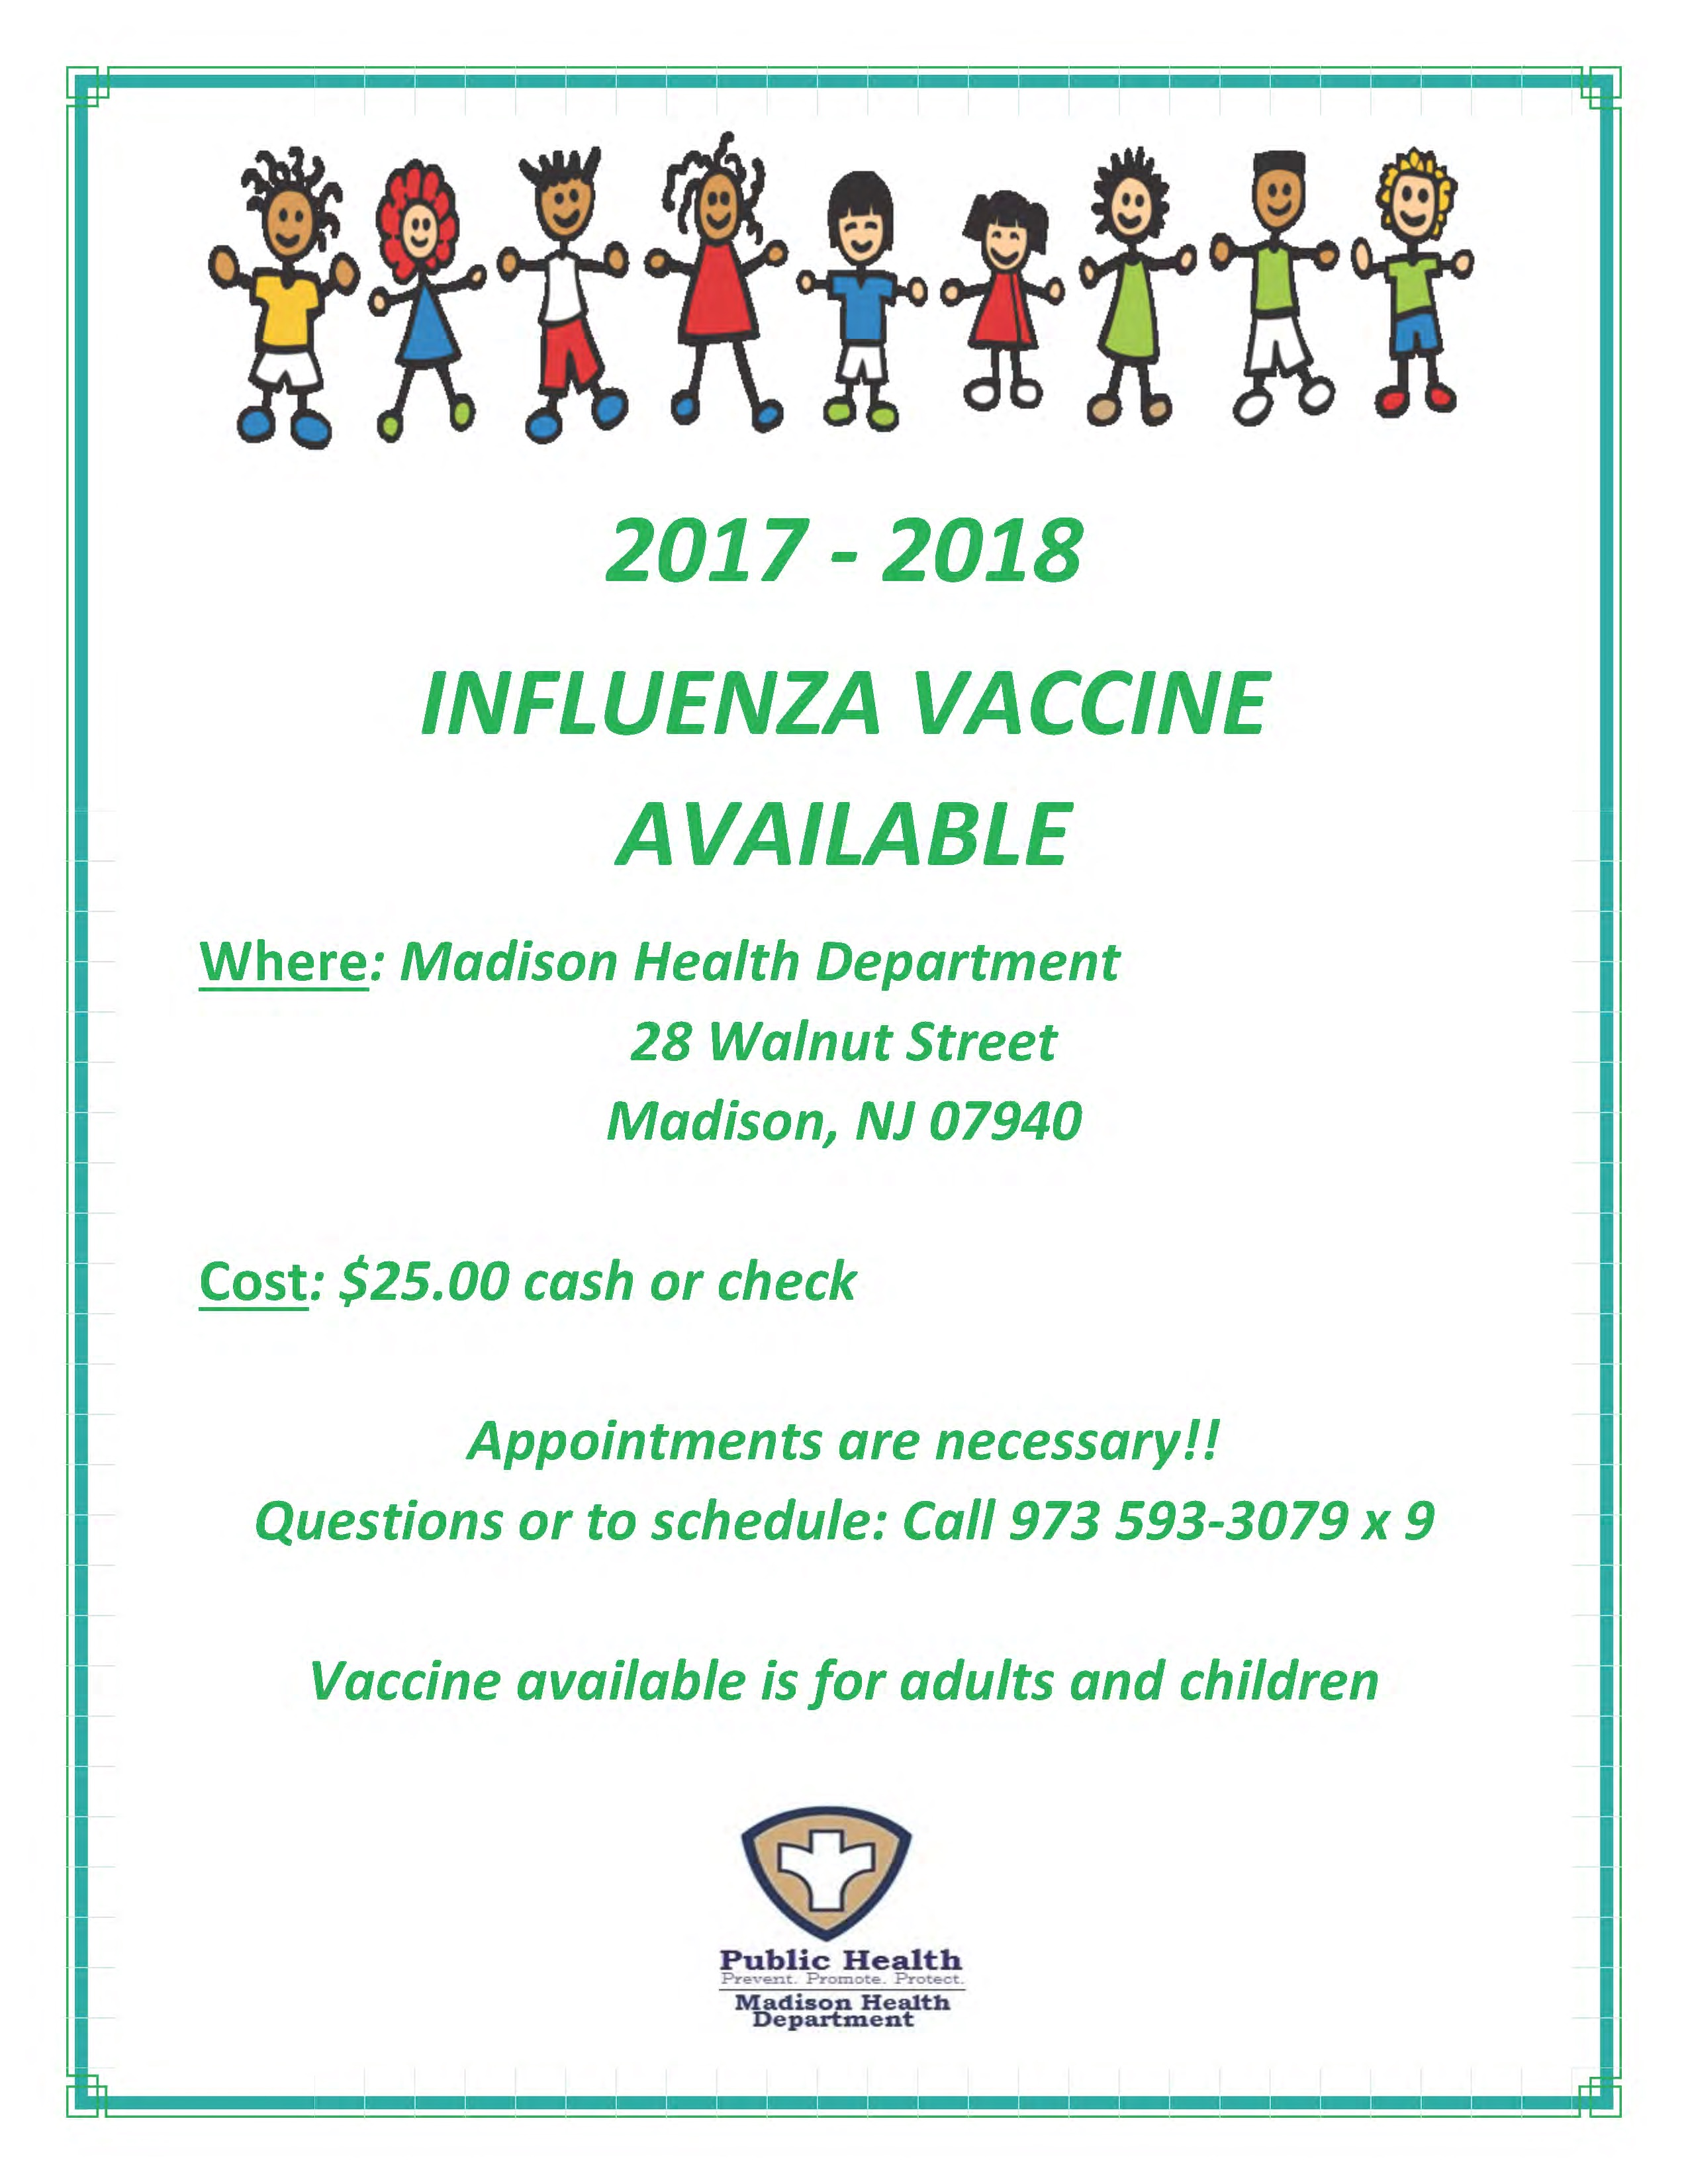 FLU Vaccine is Available